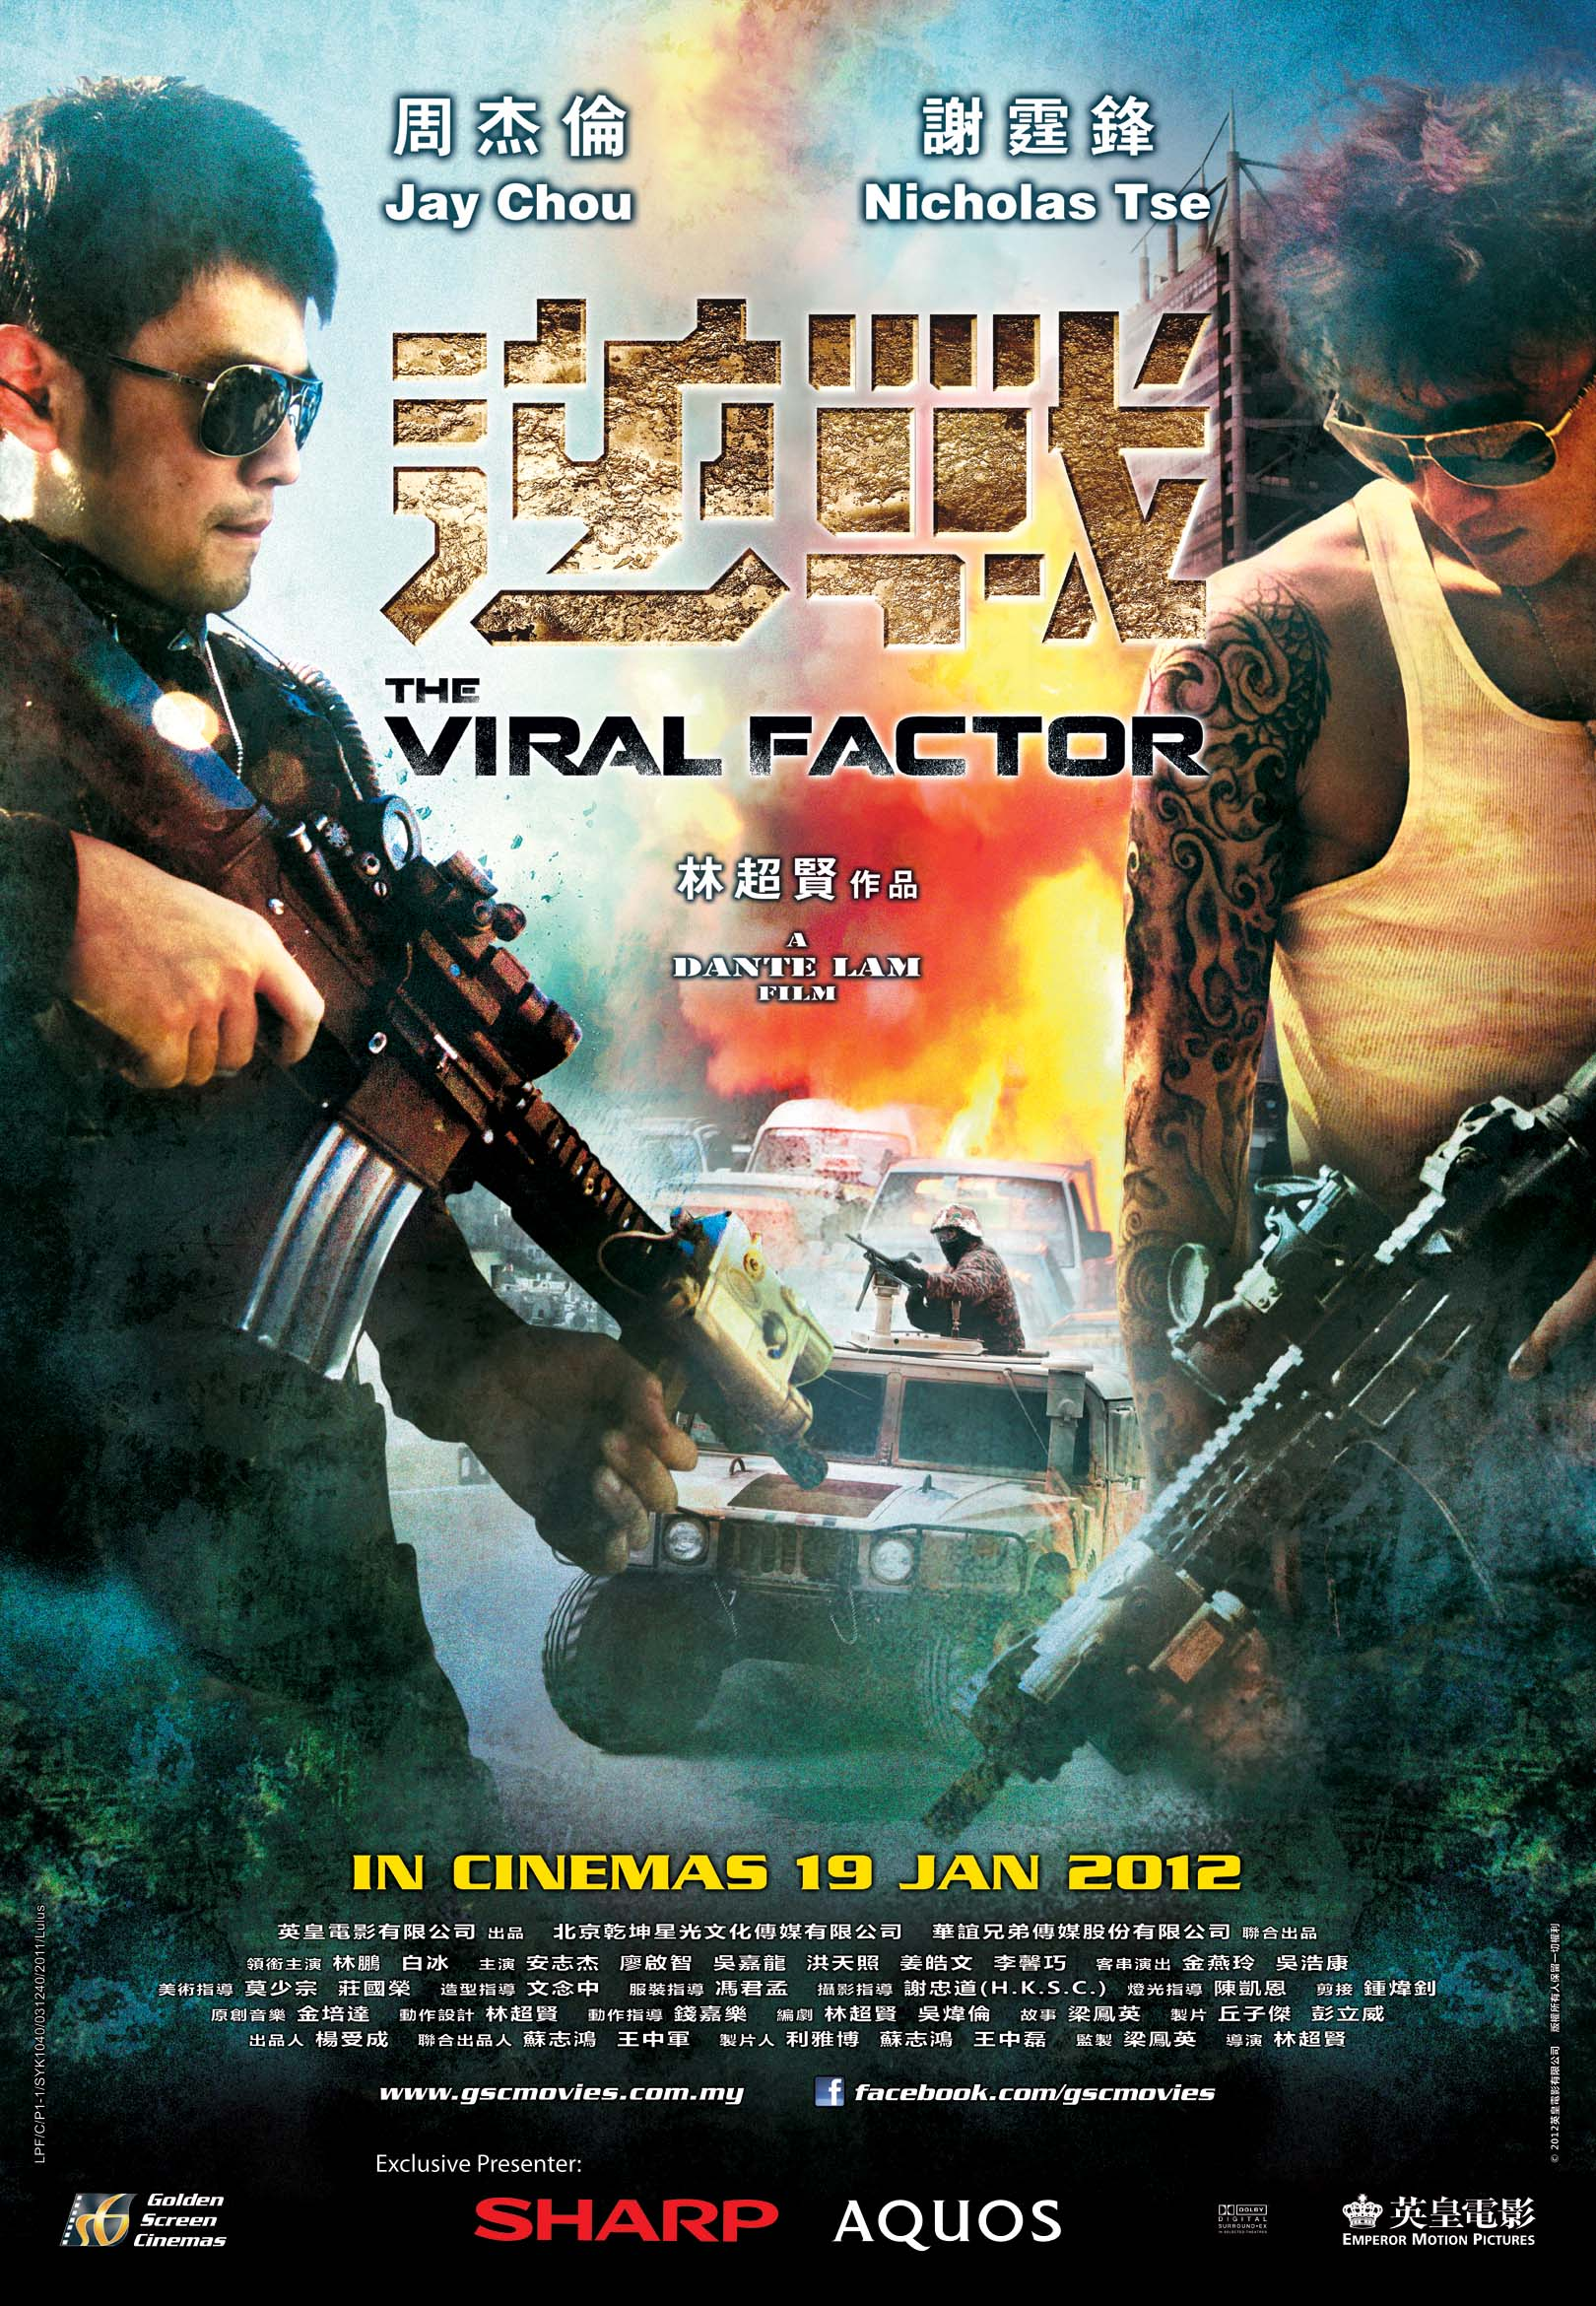 [MULTI] Viral Factor [DVDRiP] [MP4]